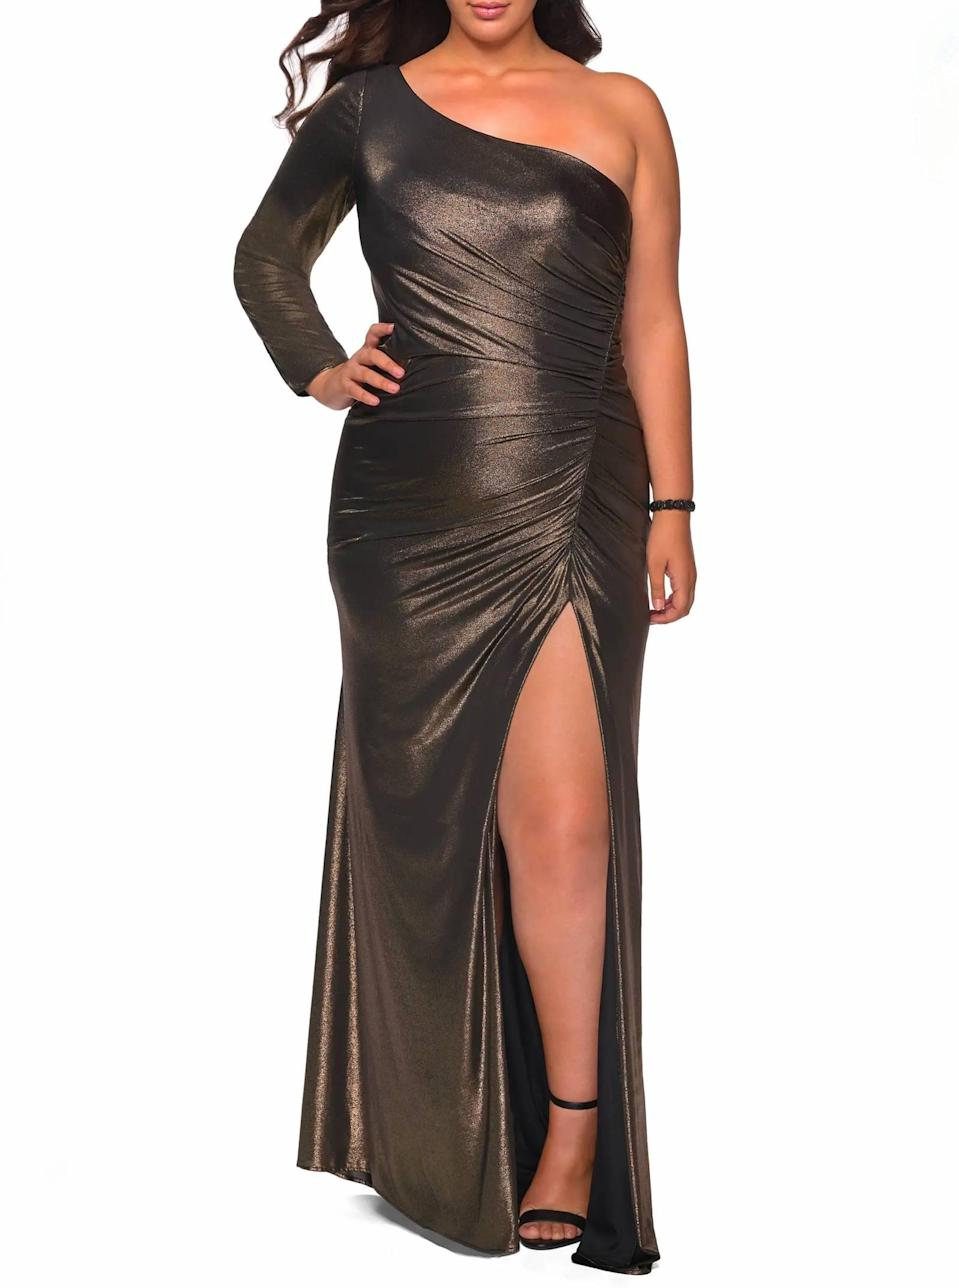 """Okay, go ahead and shut it down in this high-slit, one-sleeved number. Just don't hurt 'em now. $358, Nordstrom. <a href=""""https://www.nordstrom.com/s/la-femme-metallic-one-shoulder-gown-plus-size/5496892"""" rel=""""nofollow noopener"""" target=""""_blank"""" data-ylk=""""slk:Get it now!"""" class=""""link rapid-noclick-resp"""">Get it now!</a>"""